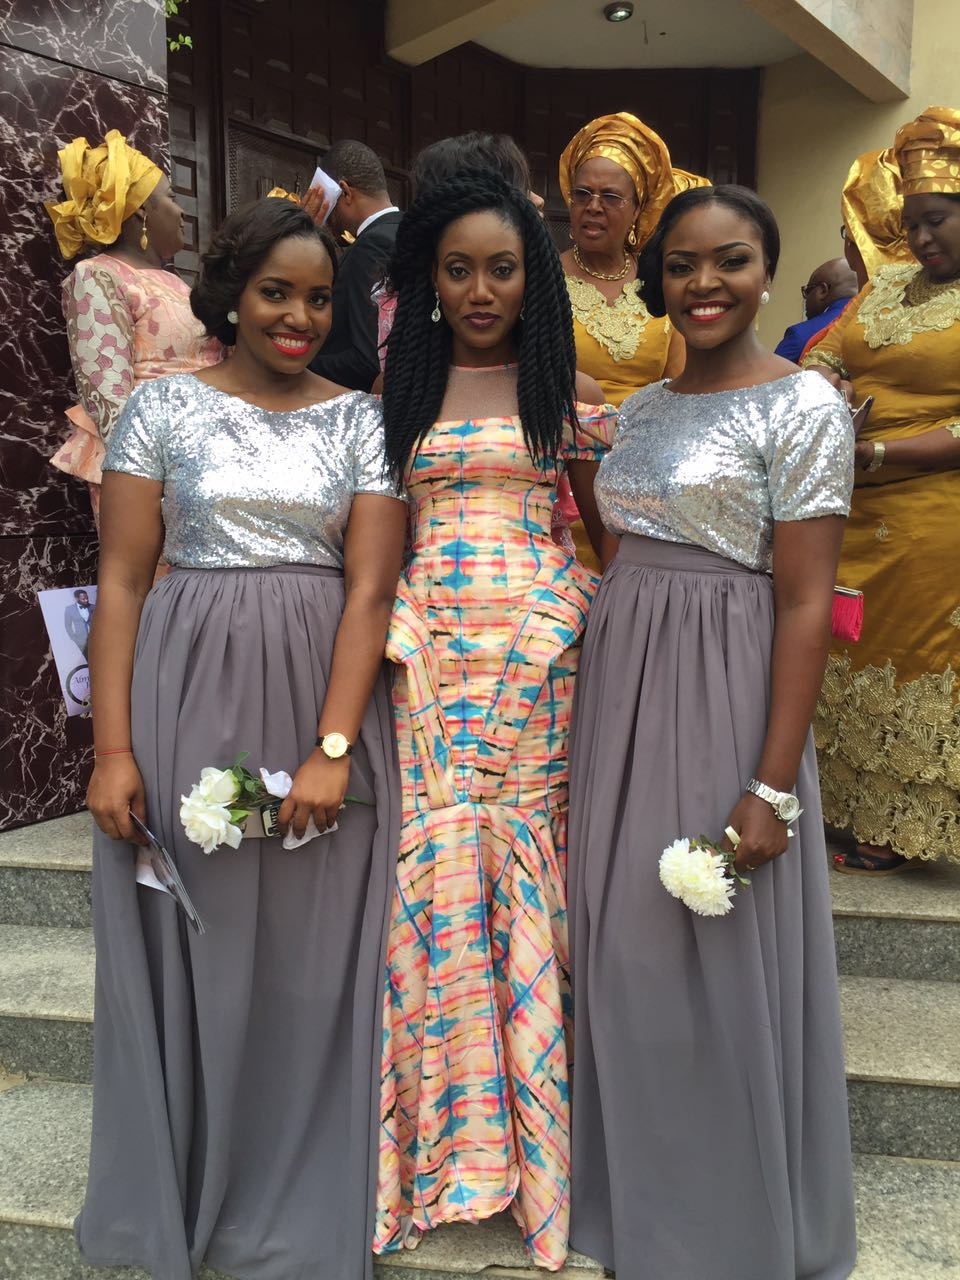 Patricia and two of my beautiful bridesmaids, Eunice and ChiChi